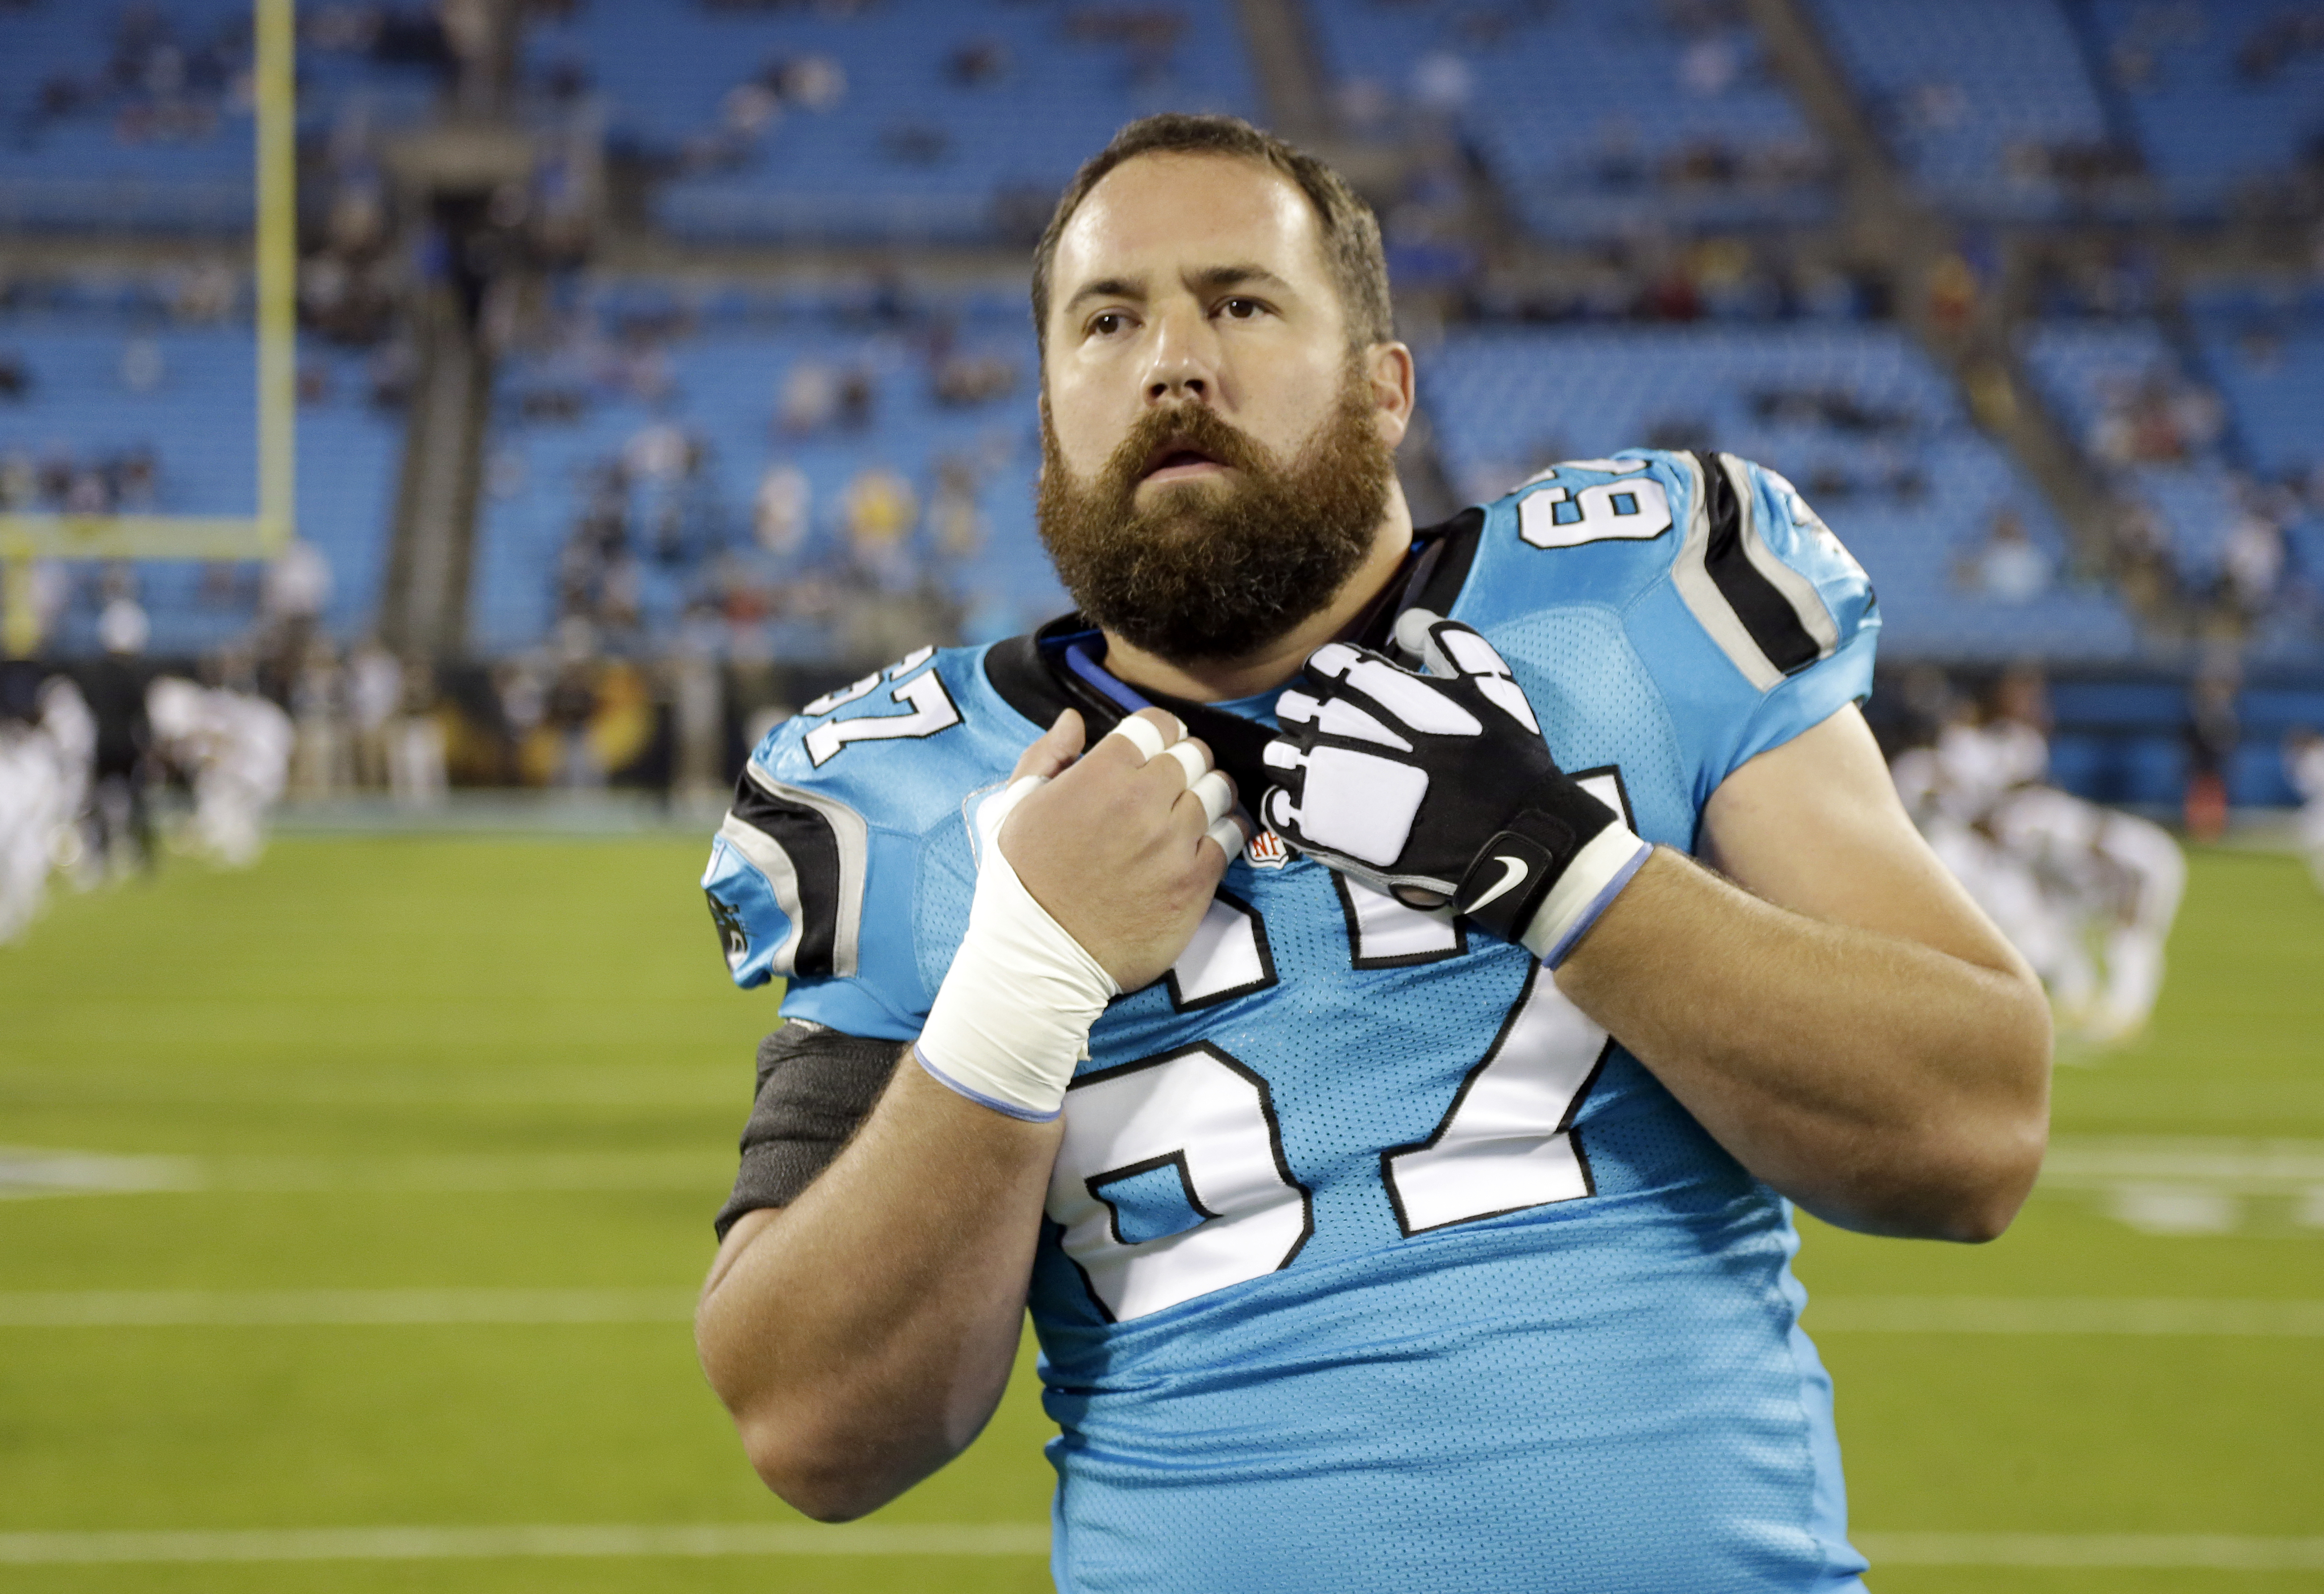 Carolina Panthers' Ryan Kalil (67) stretches before an NFL football game against the New Orleans Saints in Charlotte, N.C., Thursday, Nov. 17, 2016. The Panthers won 23-20.(AP Photo/Bob Leverone)